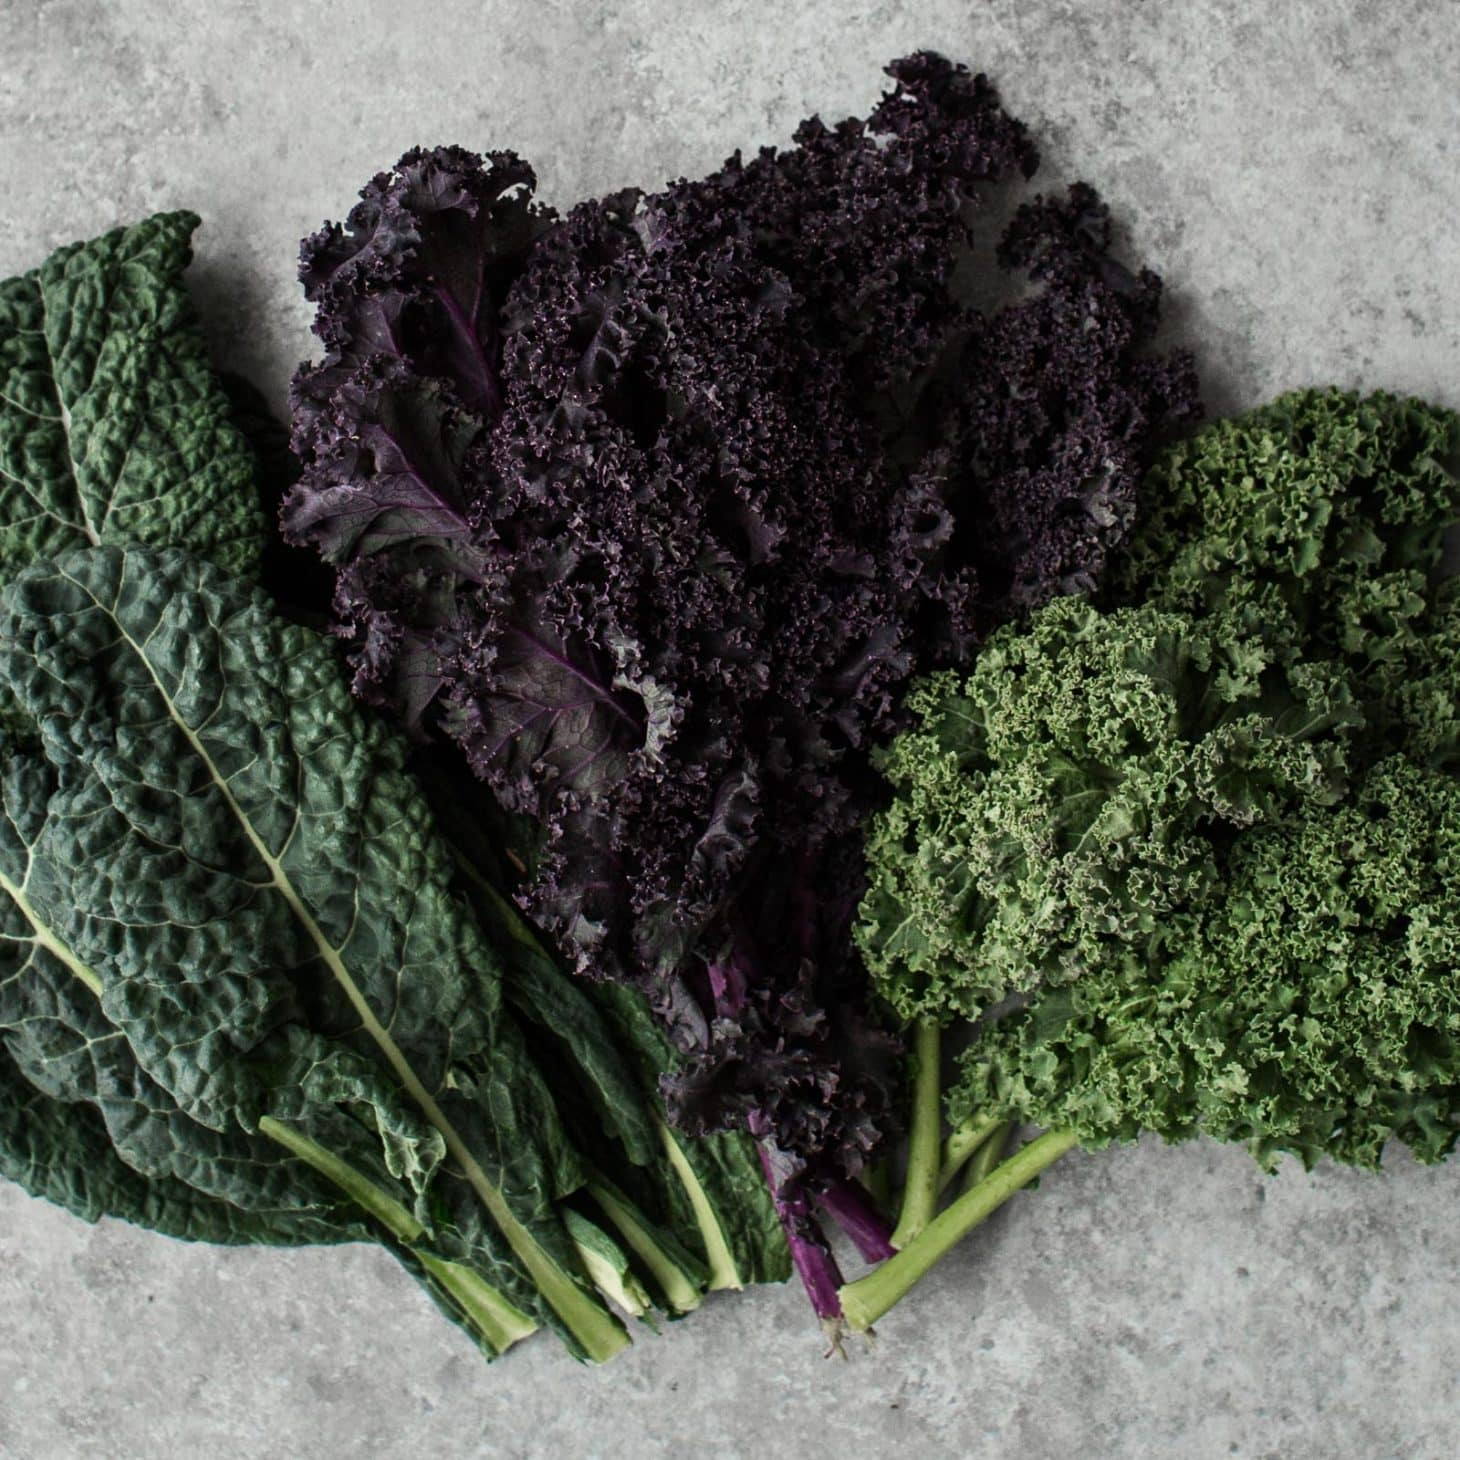 kale recipes  storage  and cooking tips